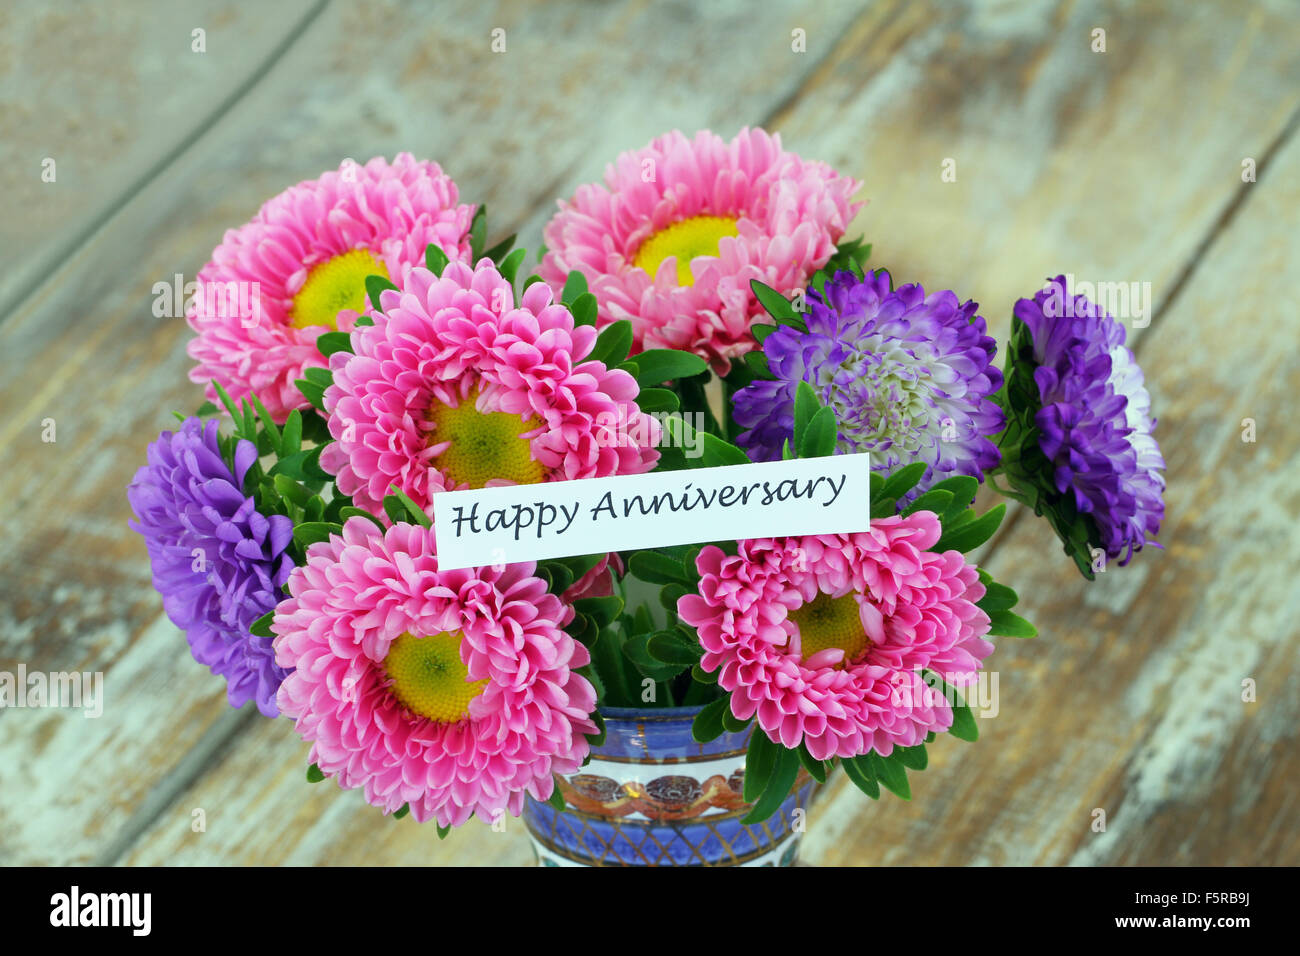 Happy Anniversary Card With Colorful Aster Flowers Bouquet On Rustic